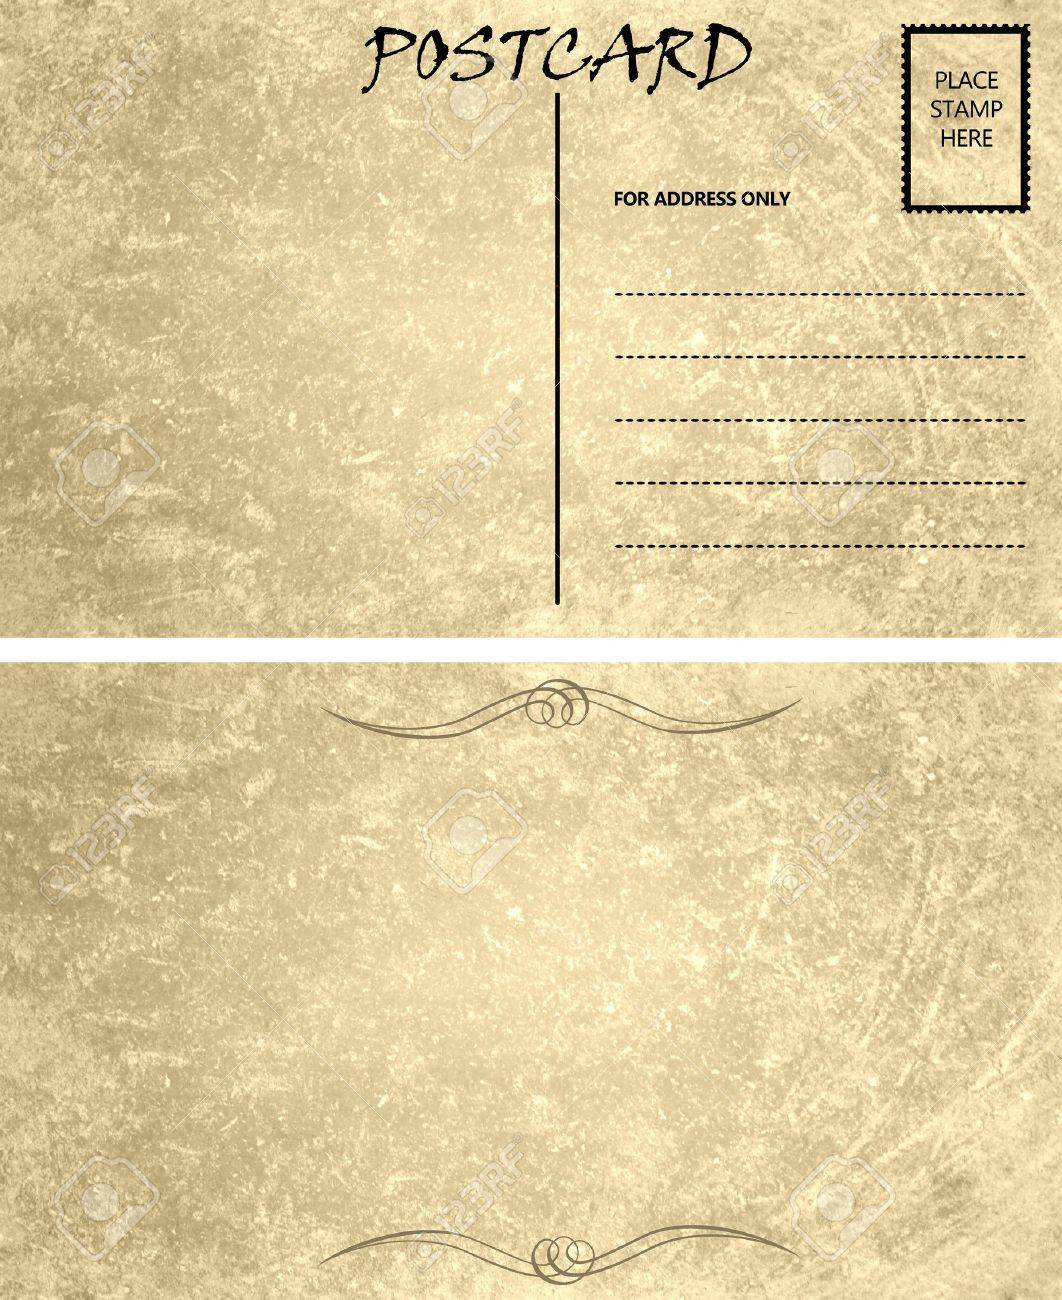 vintage stained postcard template with copy area front and back